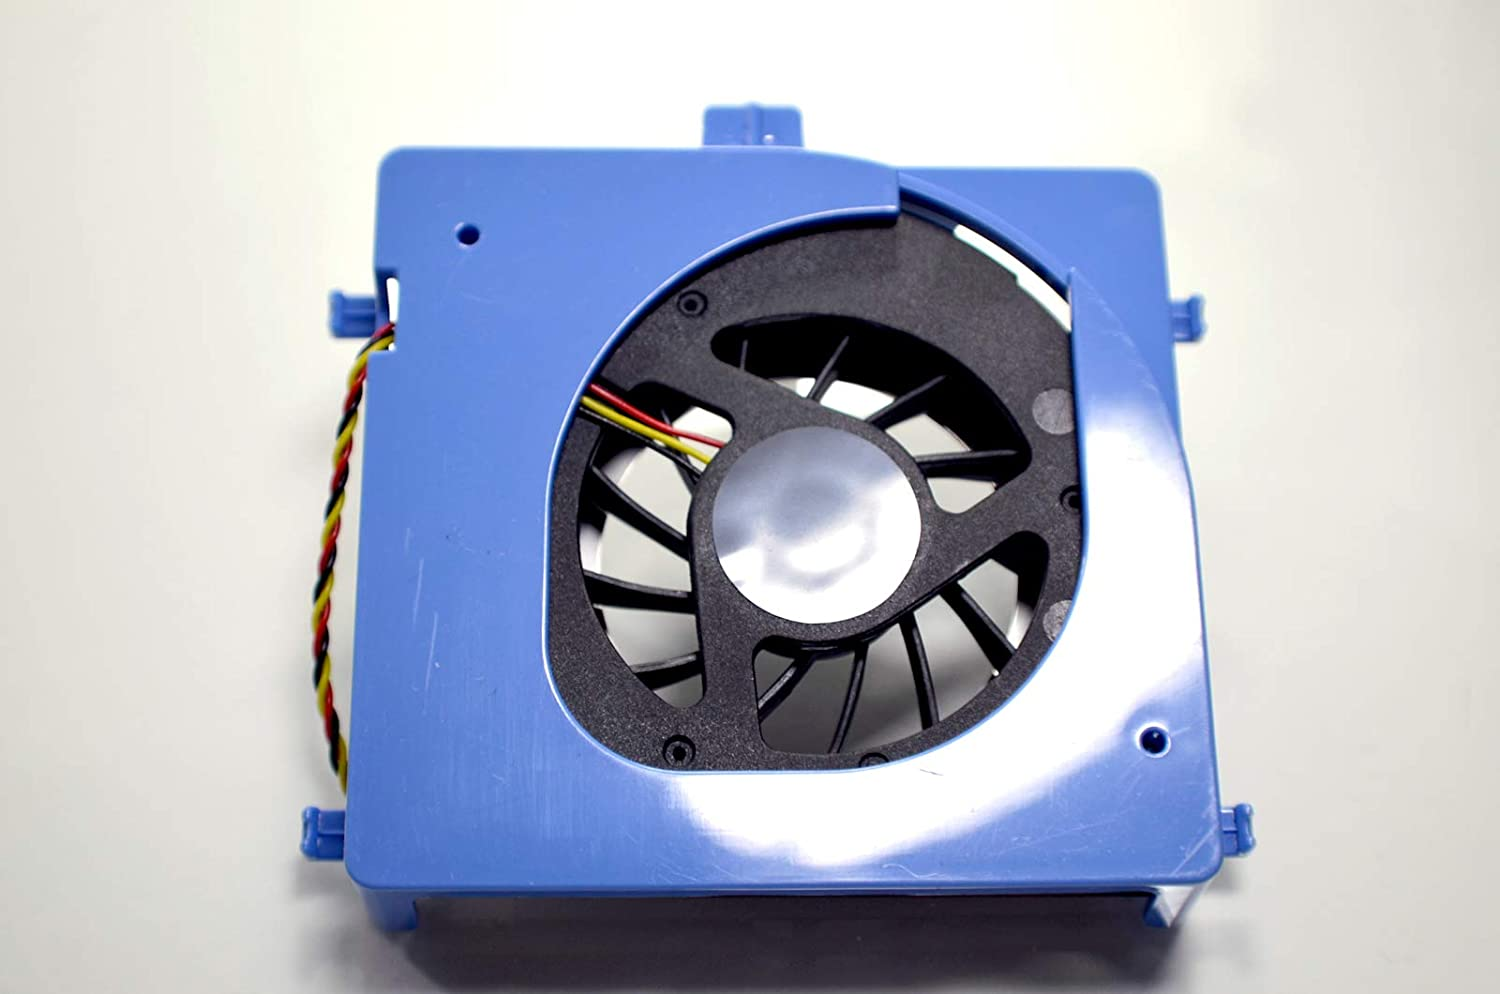 Compatible Replacement for Dell OptiPlex GX620 745 755 760 USFF Hard Drive HDD Cooling Fan w/Bracket DW016 HK120 HK253 GB0507PGV1-A